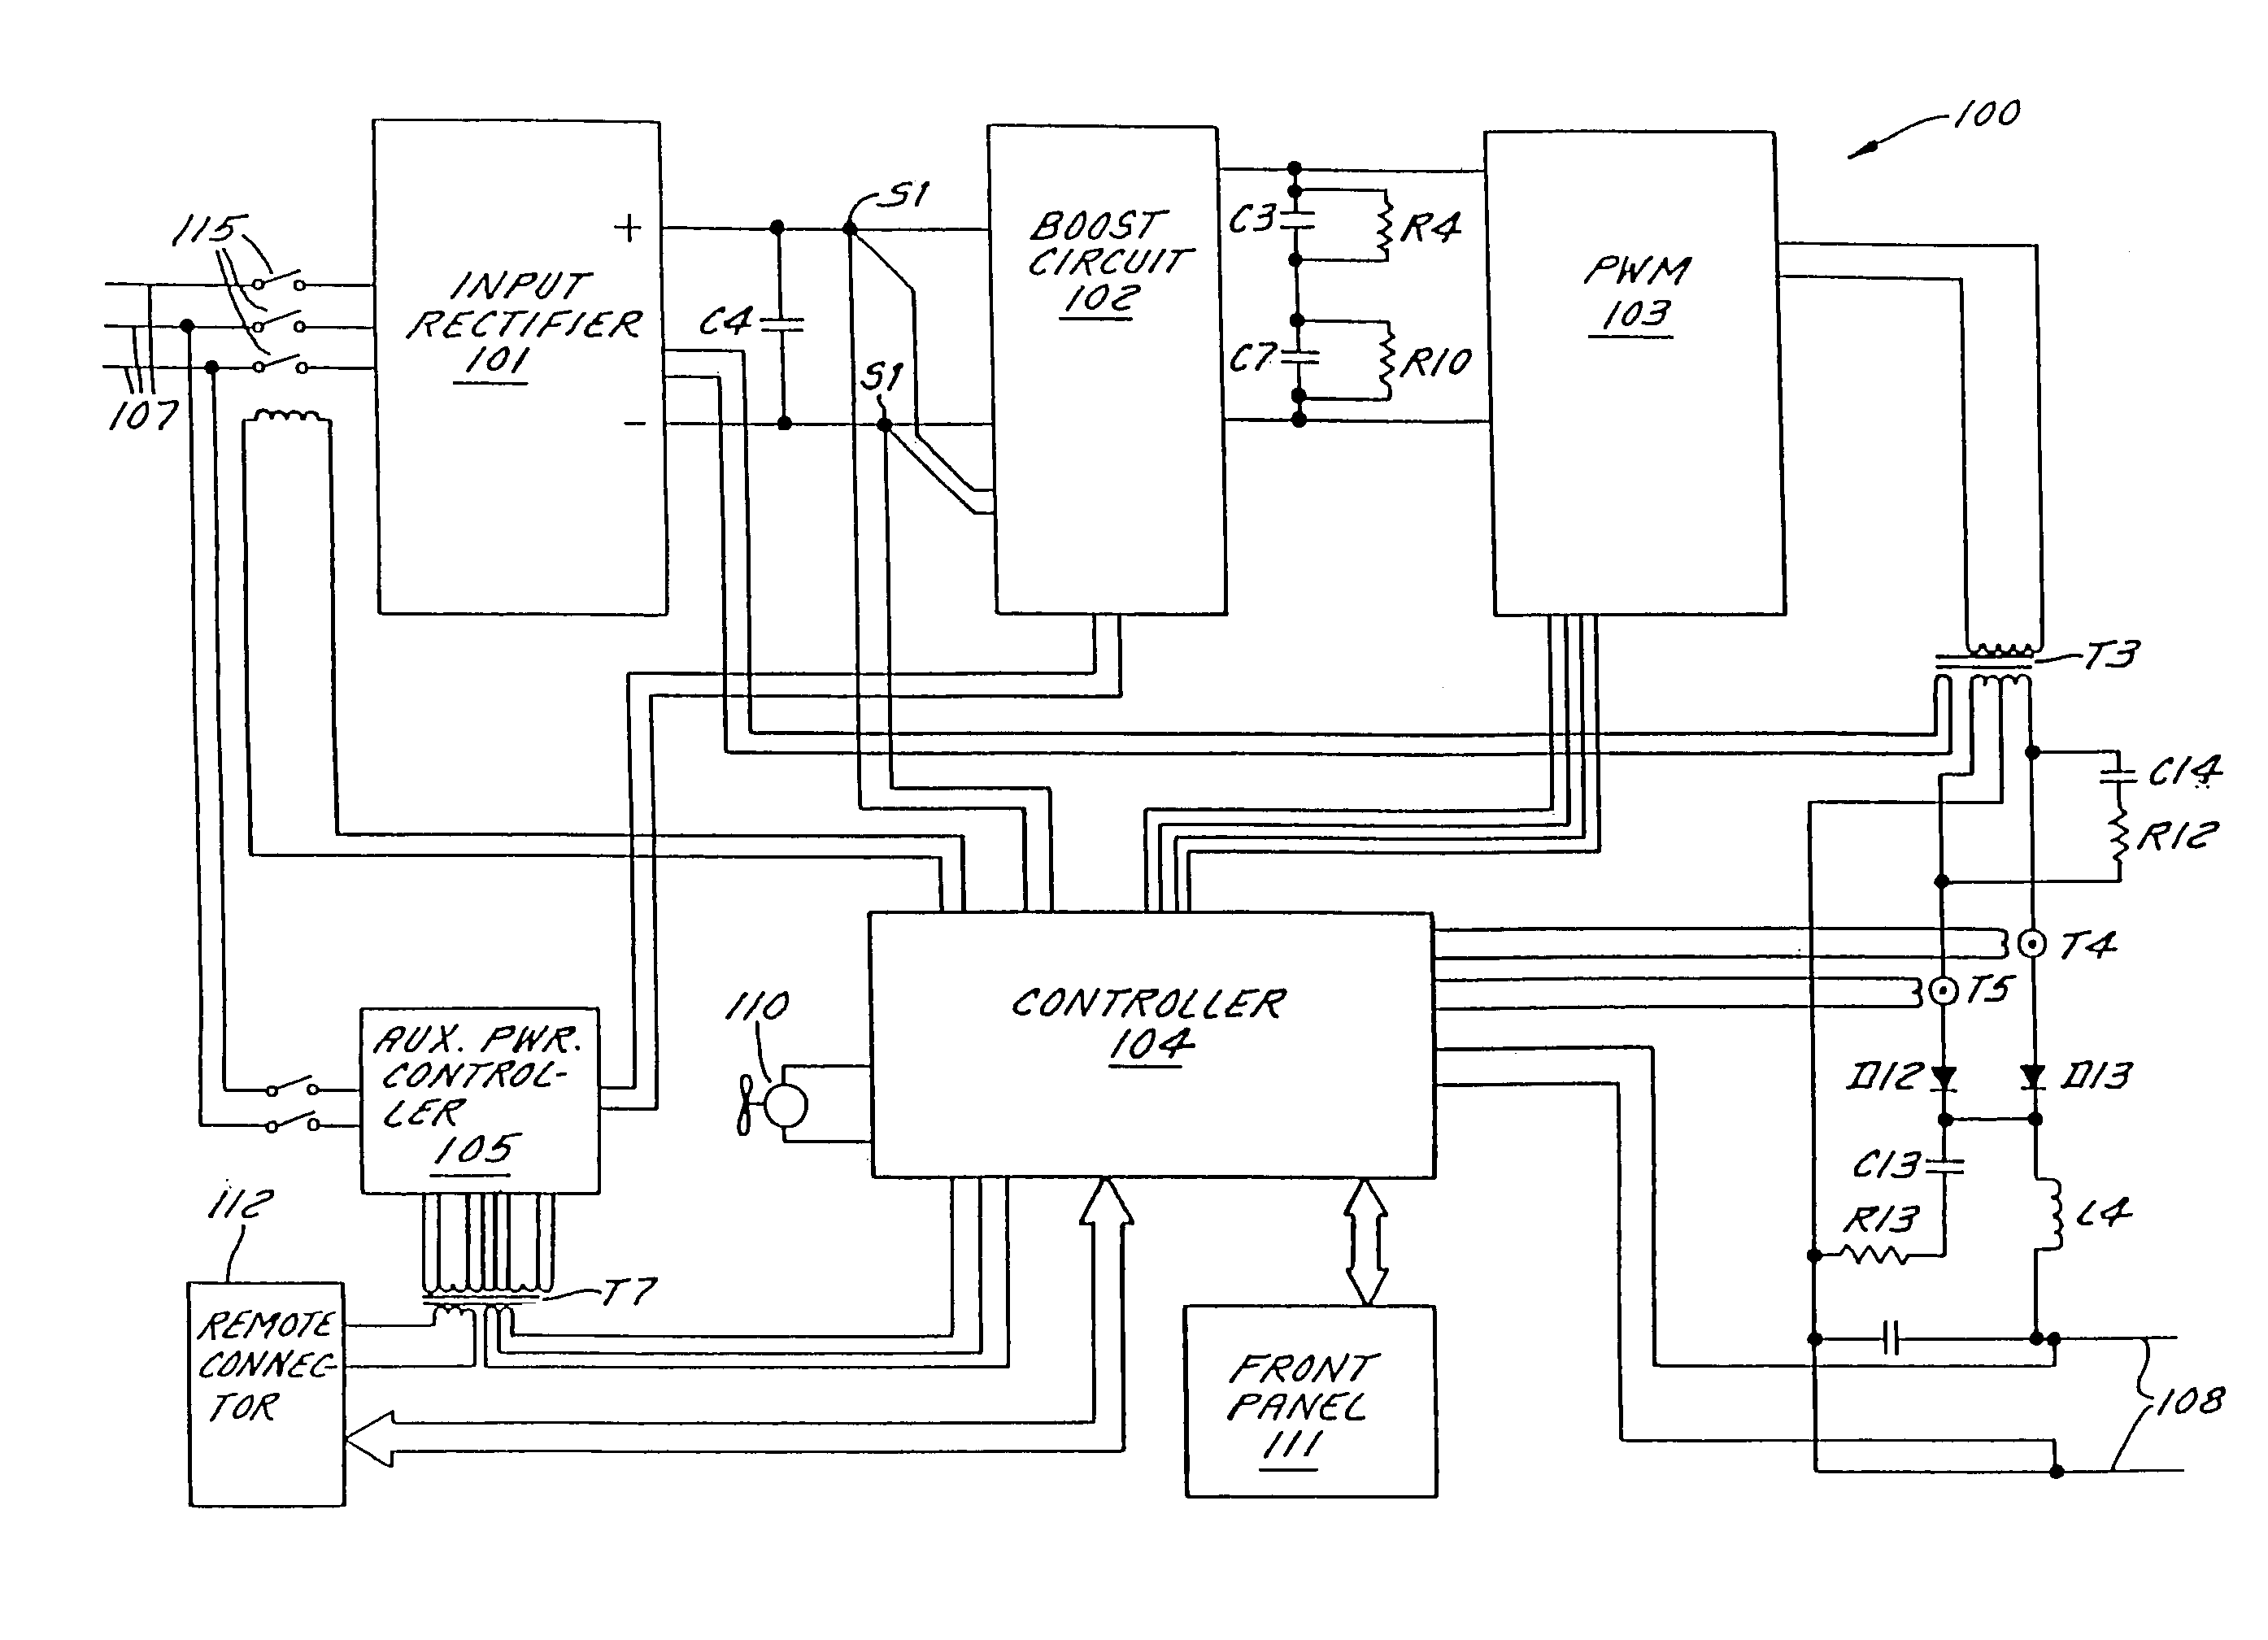 sa 200 remote wiring diagram get free image about wiring For an Old Lincoln  AC-225 Welder Wiring Diagram Lincoln SA 250 Welder Wiring Diagram